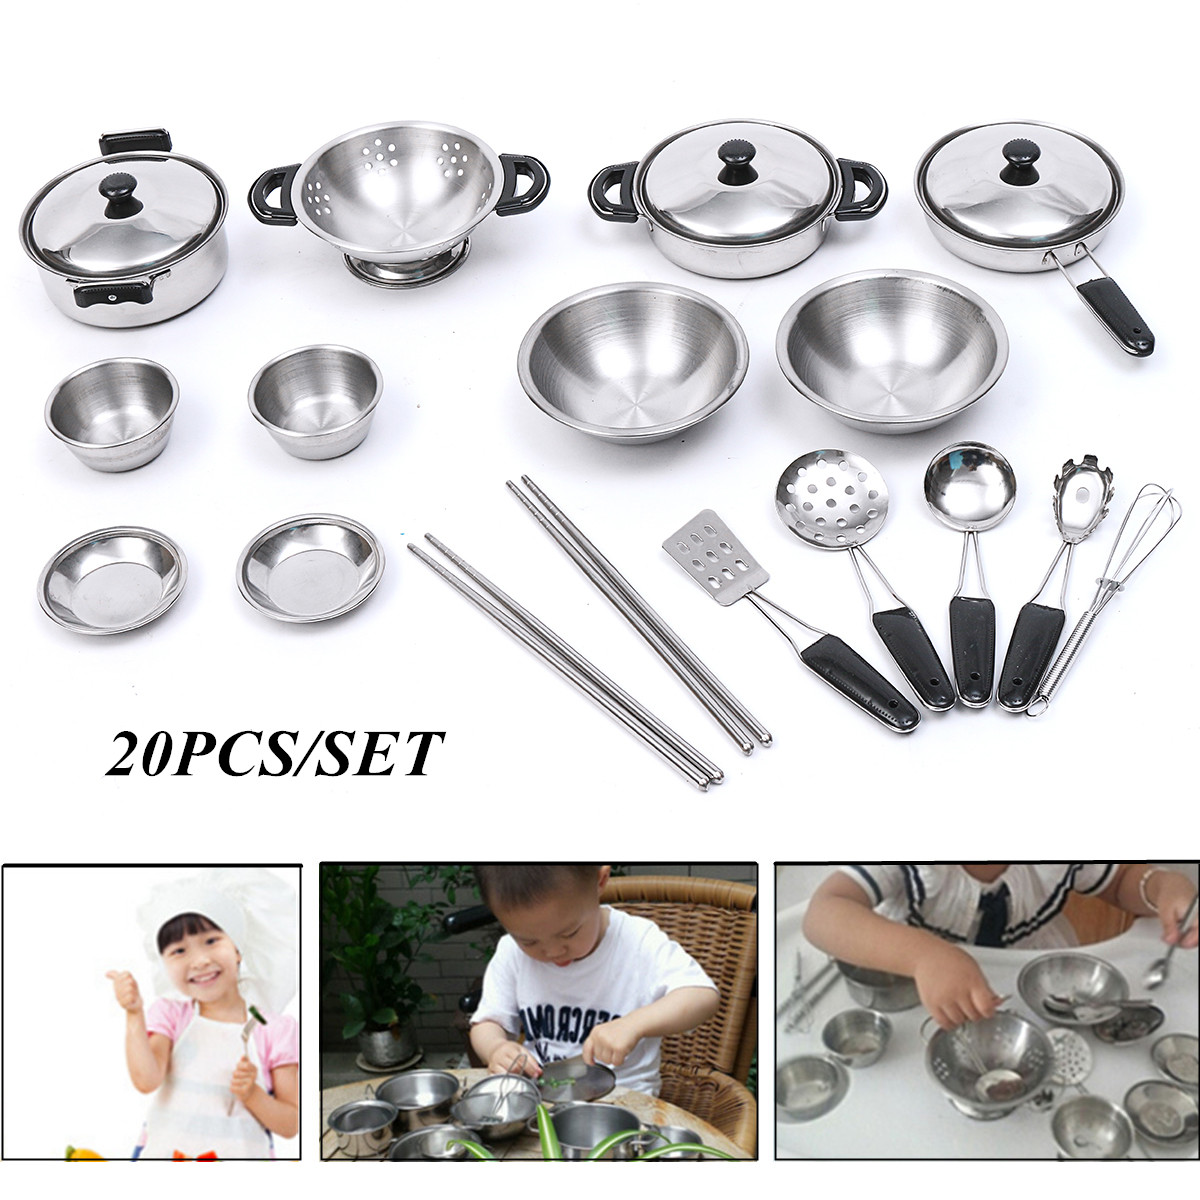 20PCS Smooth Stainless Steel Kitchen Toy Stainless Steel Mini Play House Kitchen Model Cookware Kids Toy Children Gift